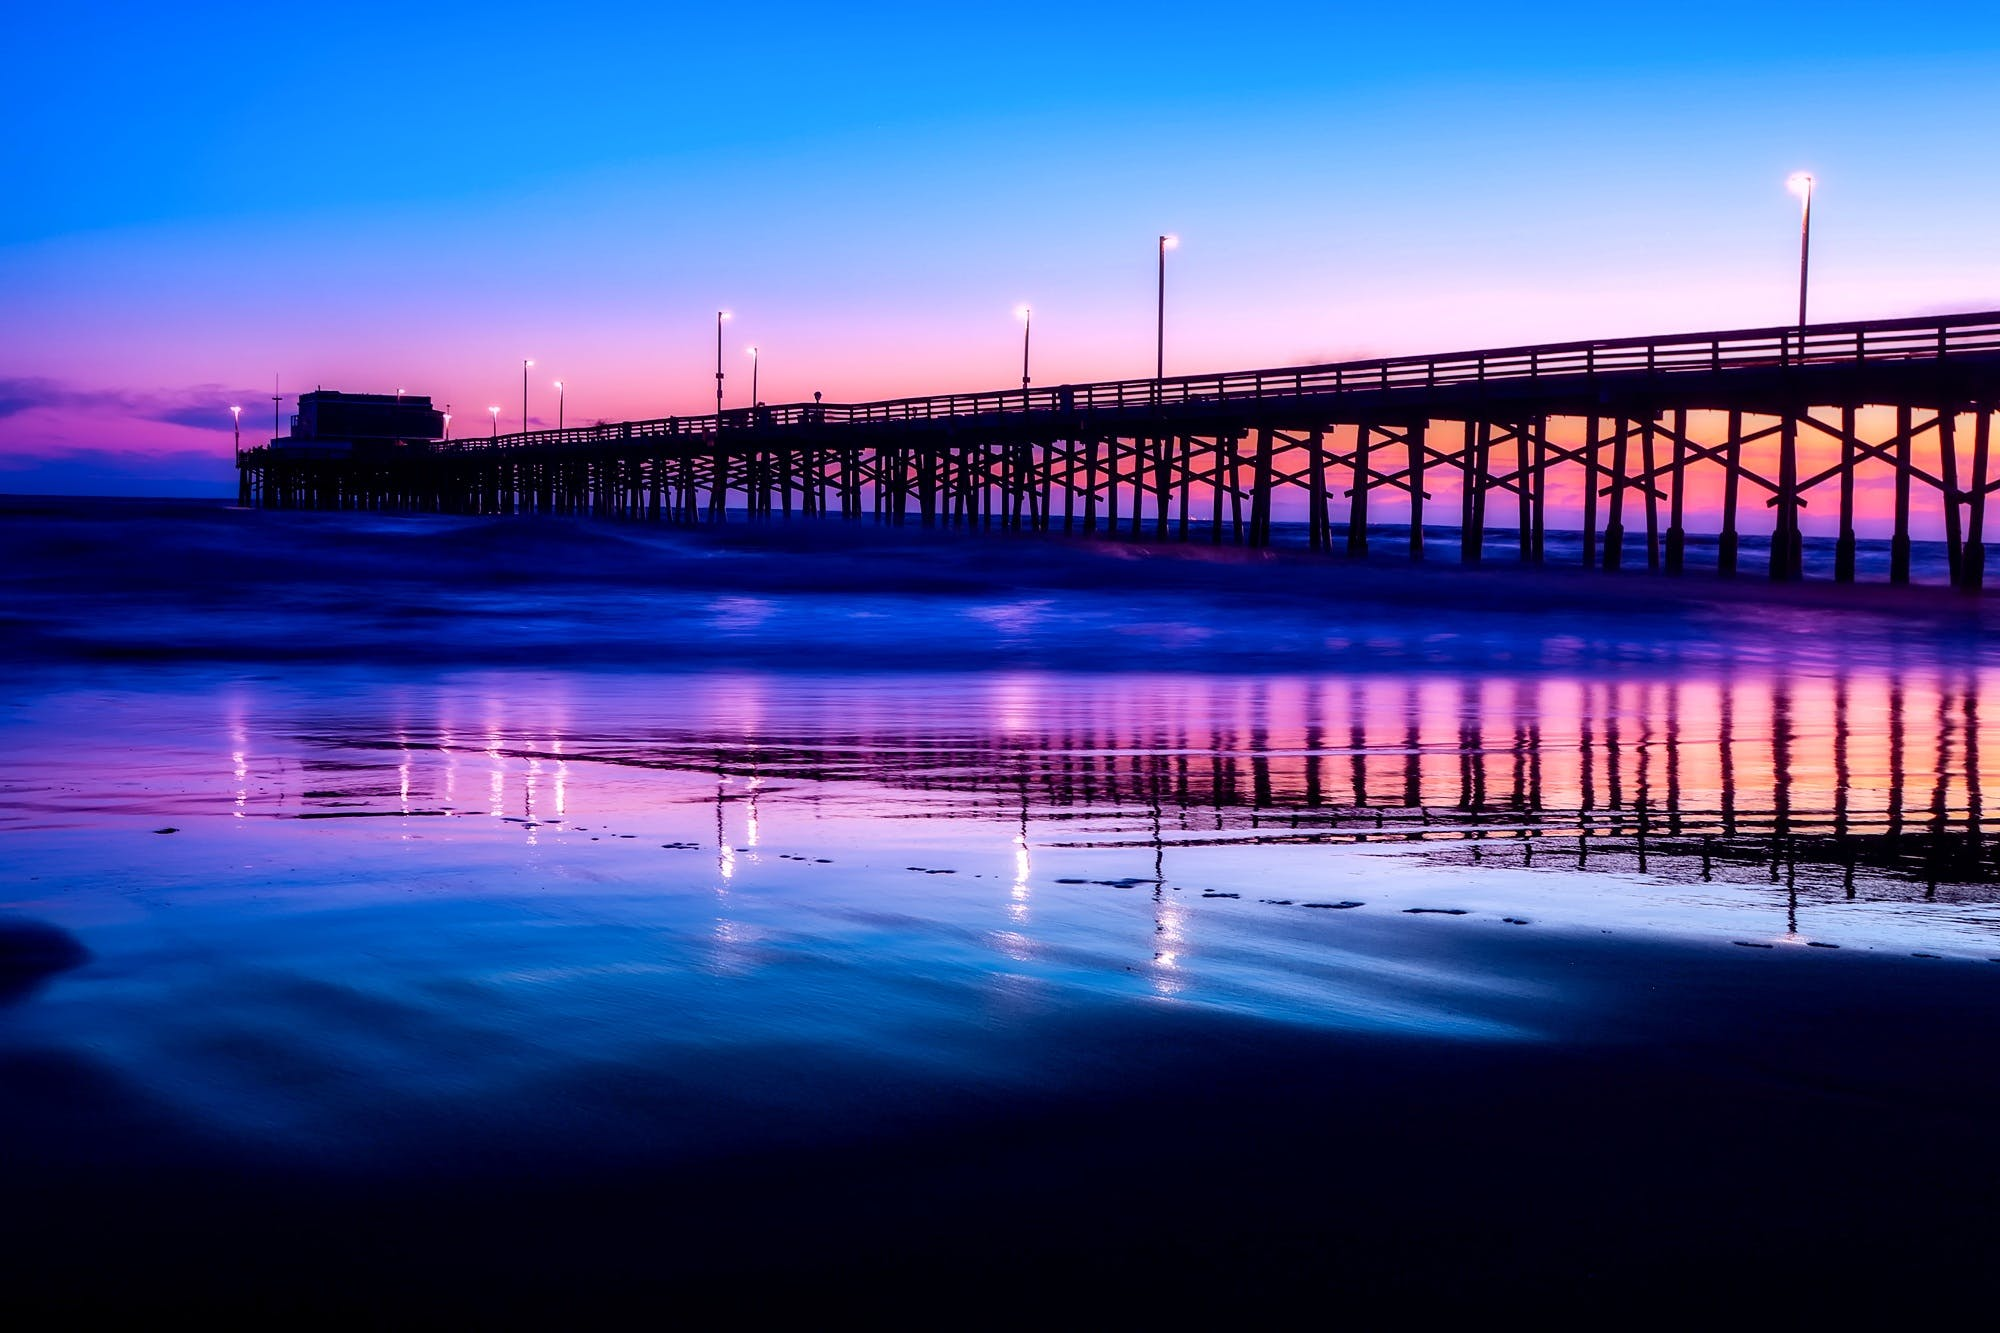 Silhouette Photography of Wooden Bridge